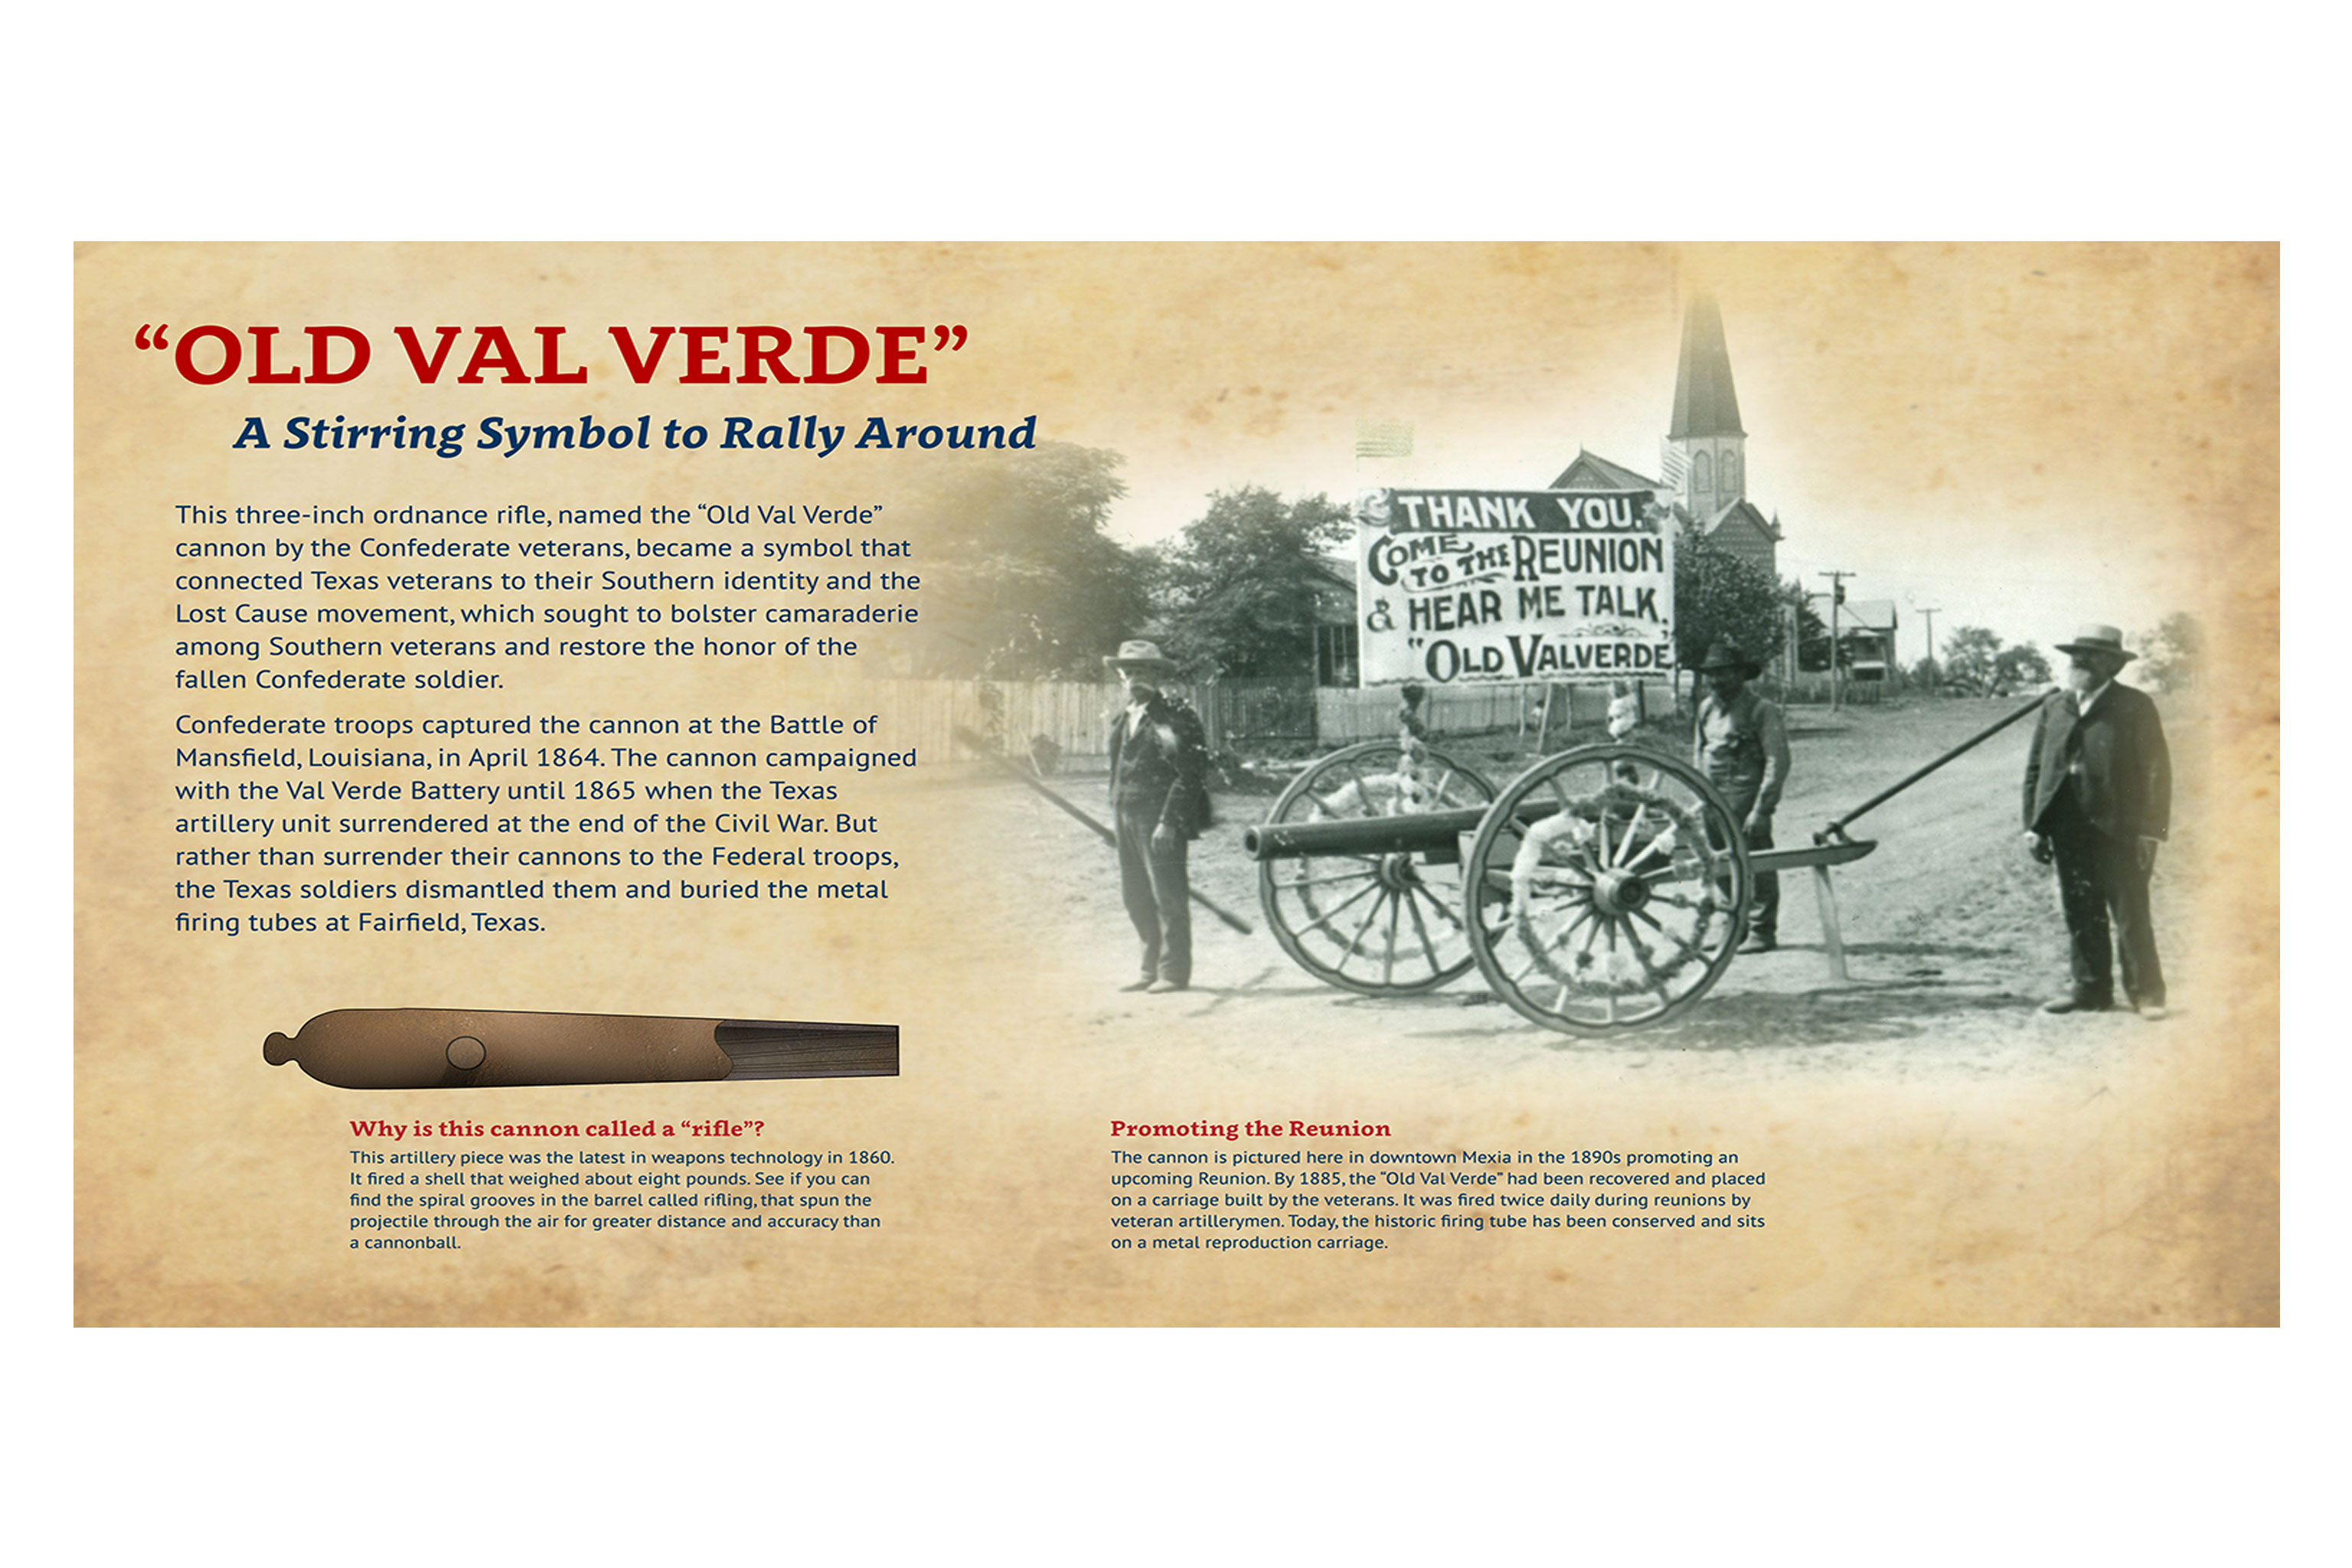 Old Val Verde, a Civil War-era cannon that Reunion Grounds campers fired to start and end each day.